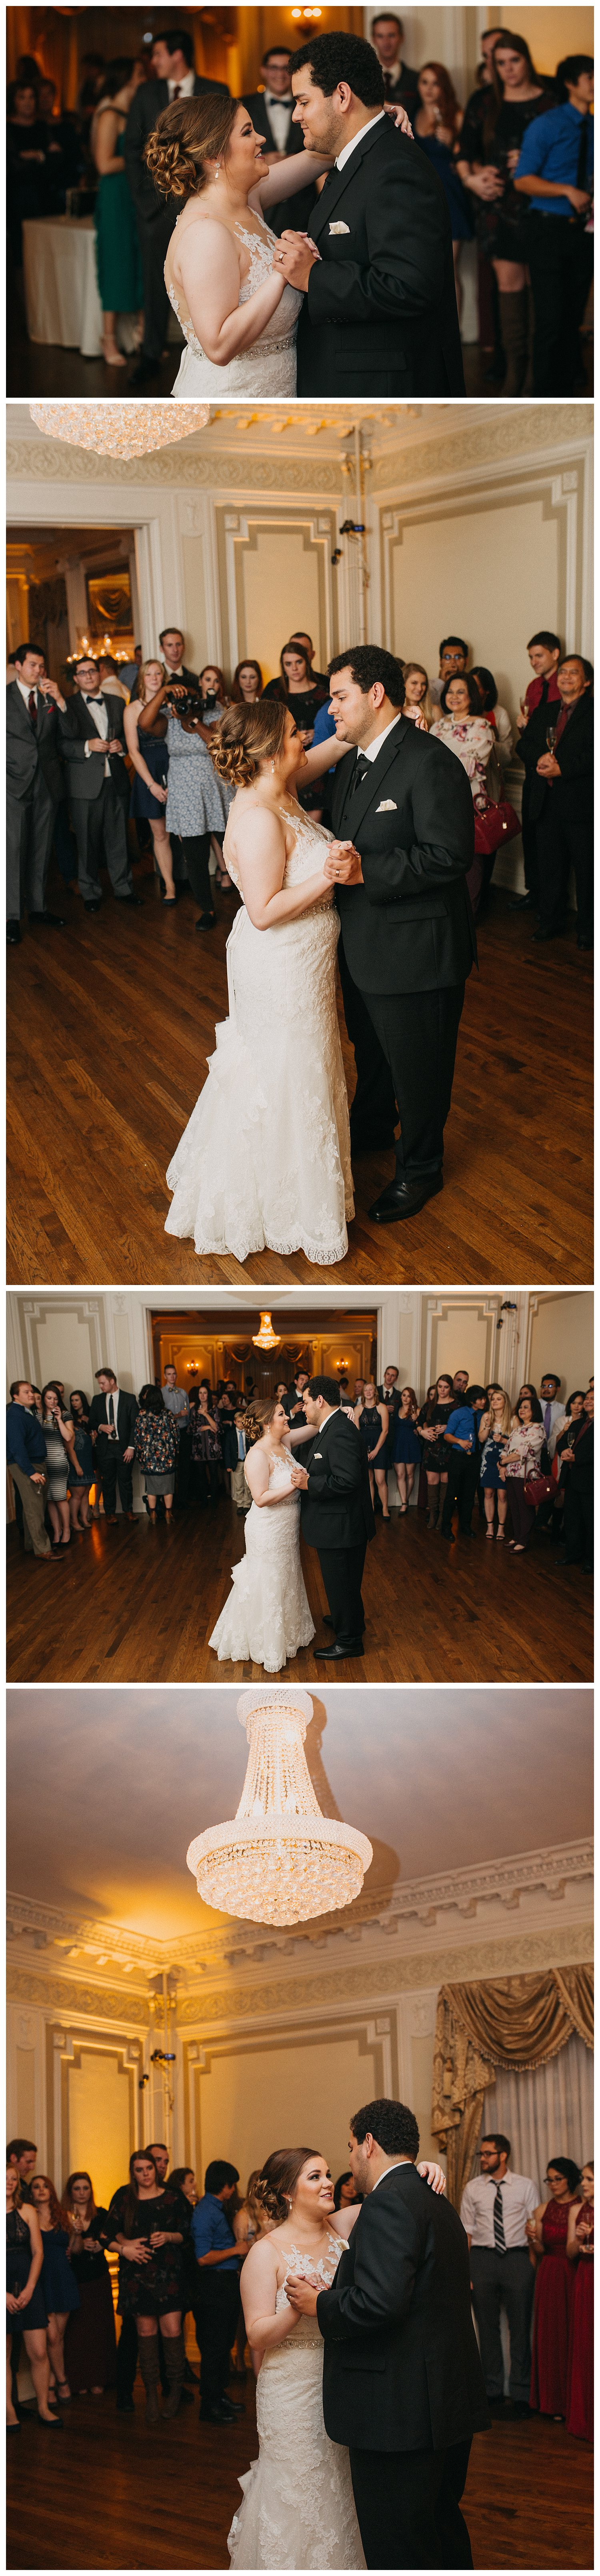 Kelsey_Diane_Photography_Loose_Mansion_Wedding_Photography_Kansas_City_Victor_Lyndsay_0165.jpg